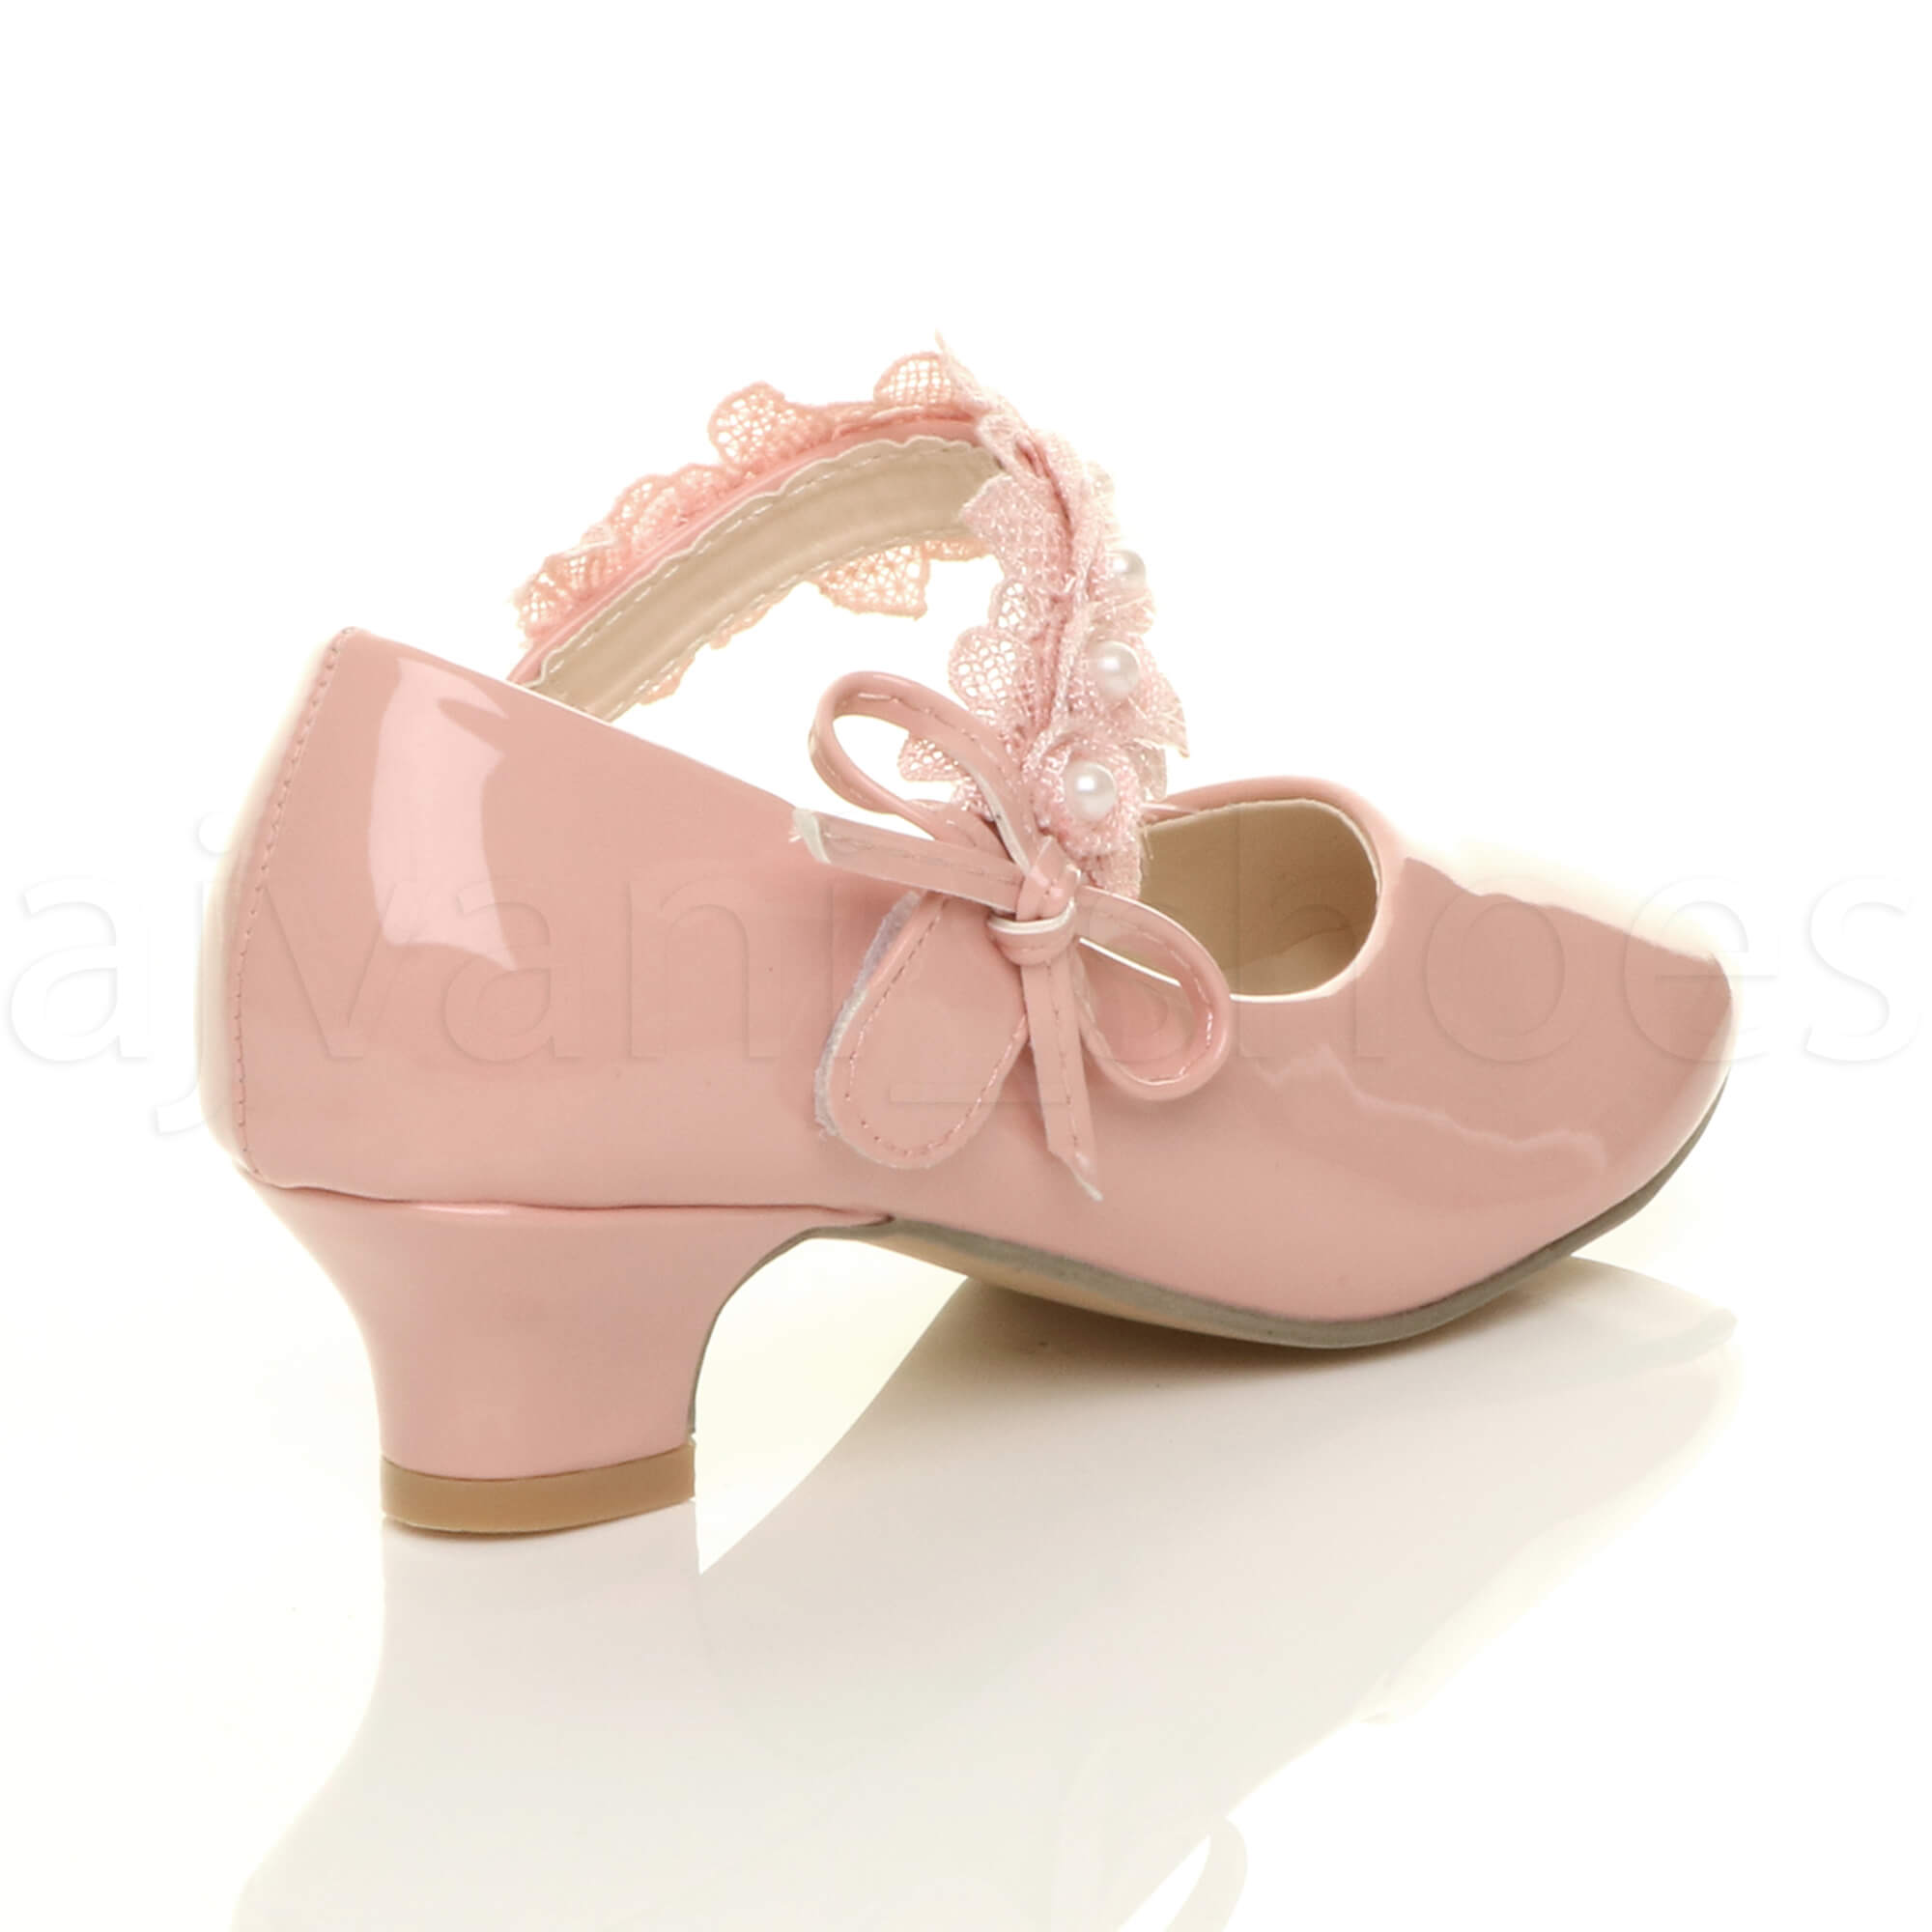 GIRLS-KIDS-CHILDRENS-LOW-HEEL-LACE-STRAP-MARY-JANE-PARTY-FORMAL-SHOES-SIZE